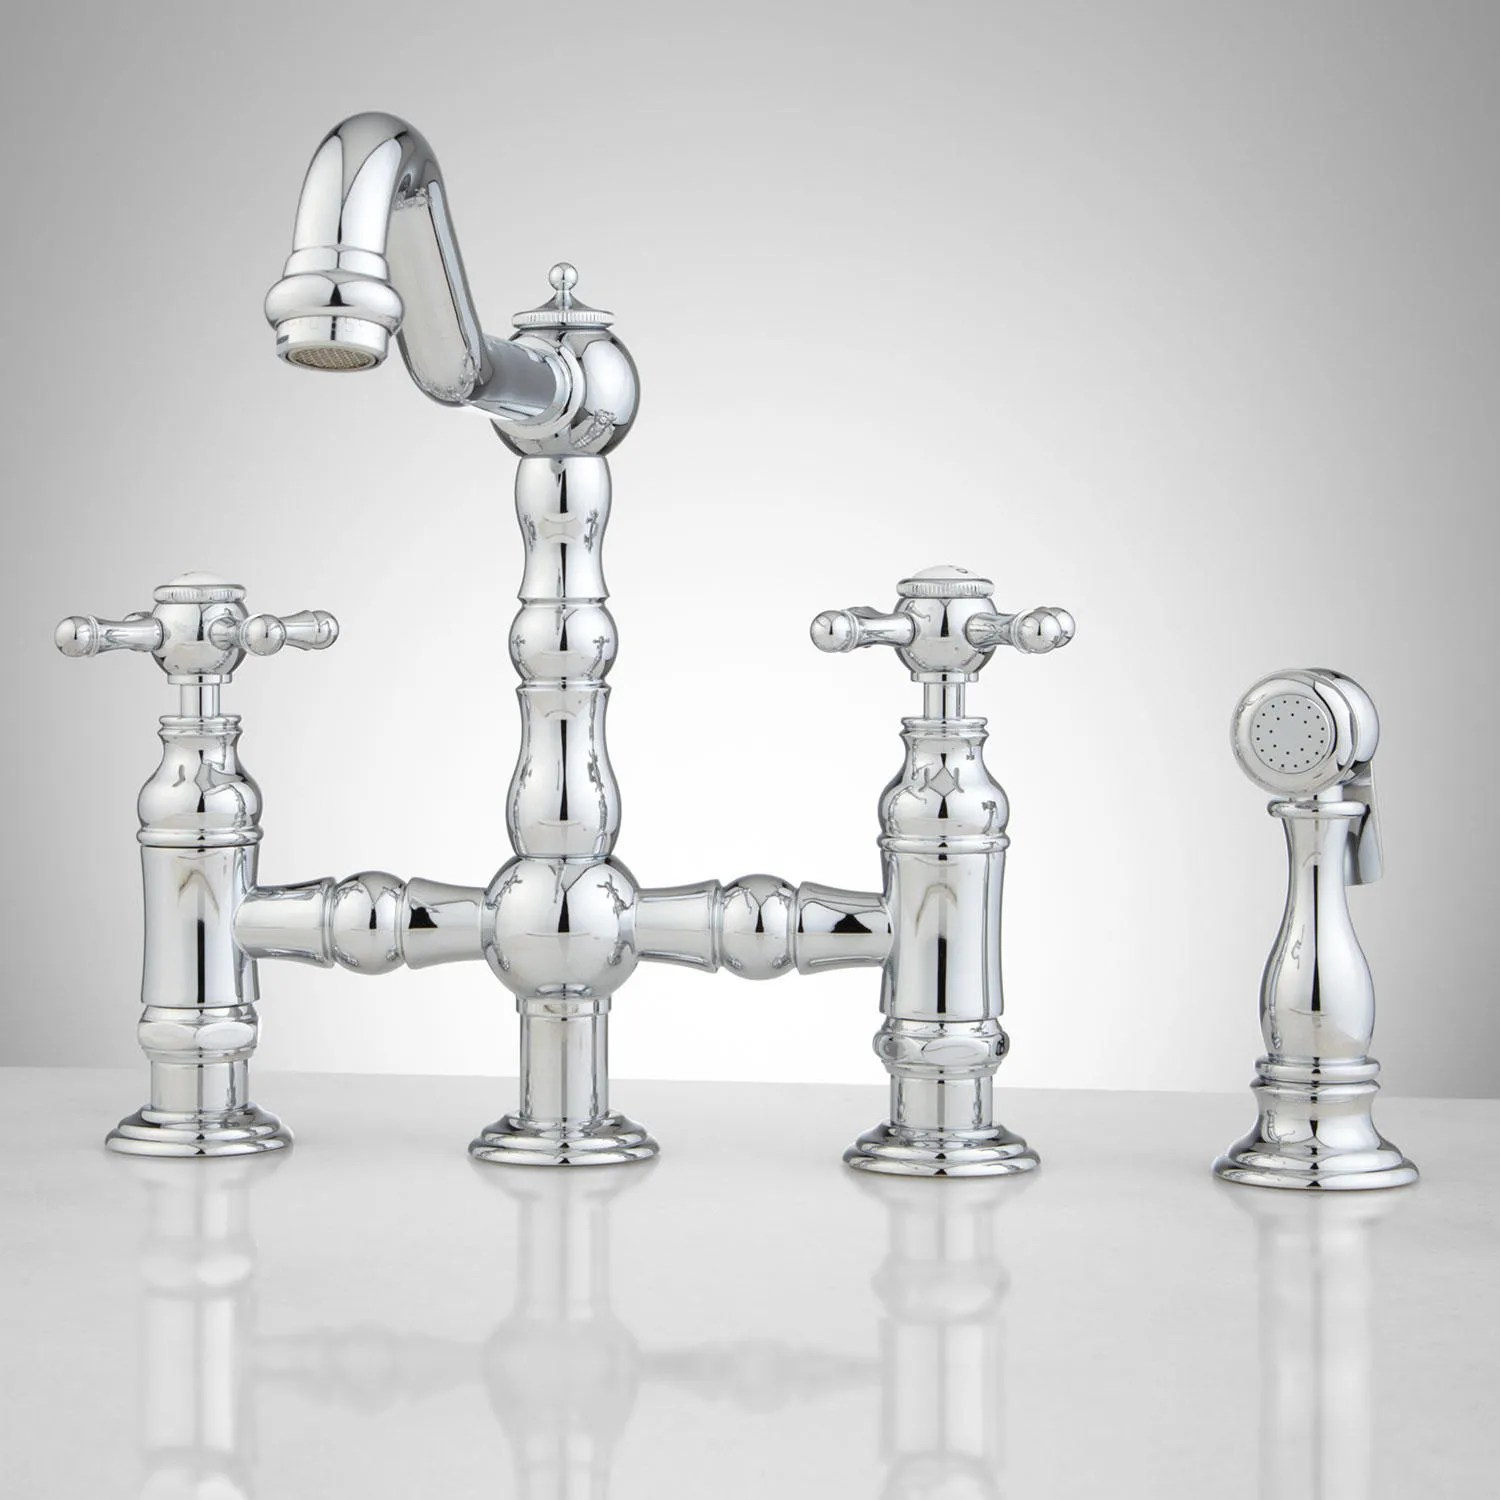 Delilah DeckMount Bridge Faucet with Side Spray  Cross